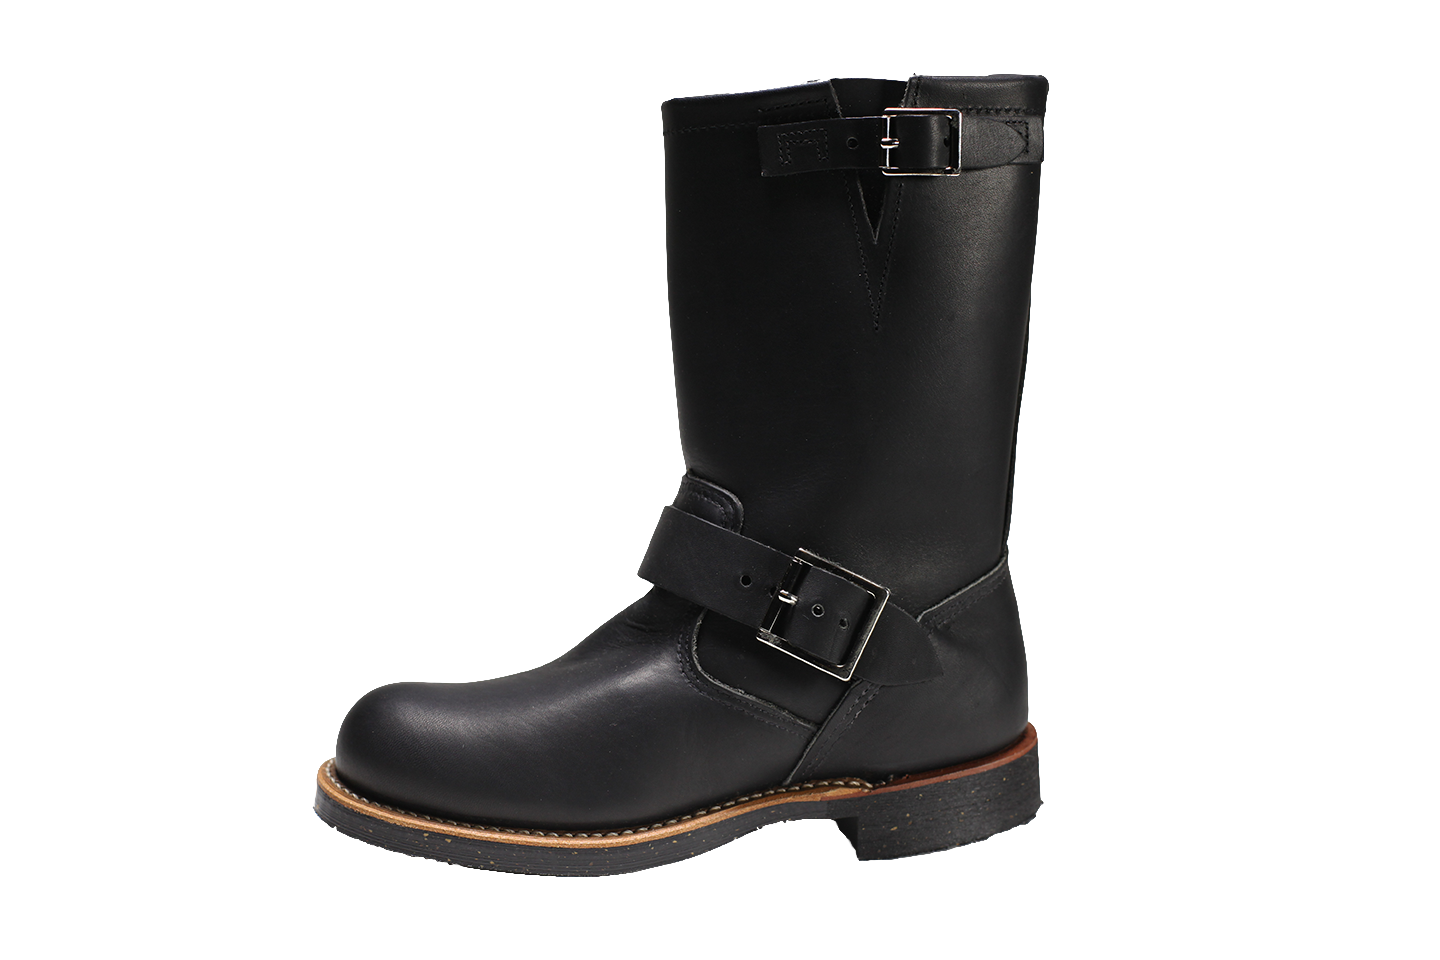 Red Wing Womens Boots pGr6XGHi